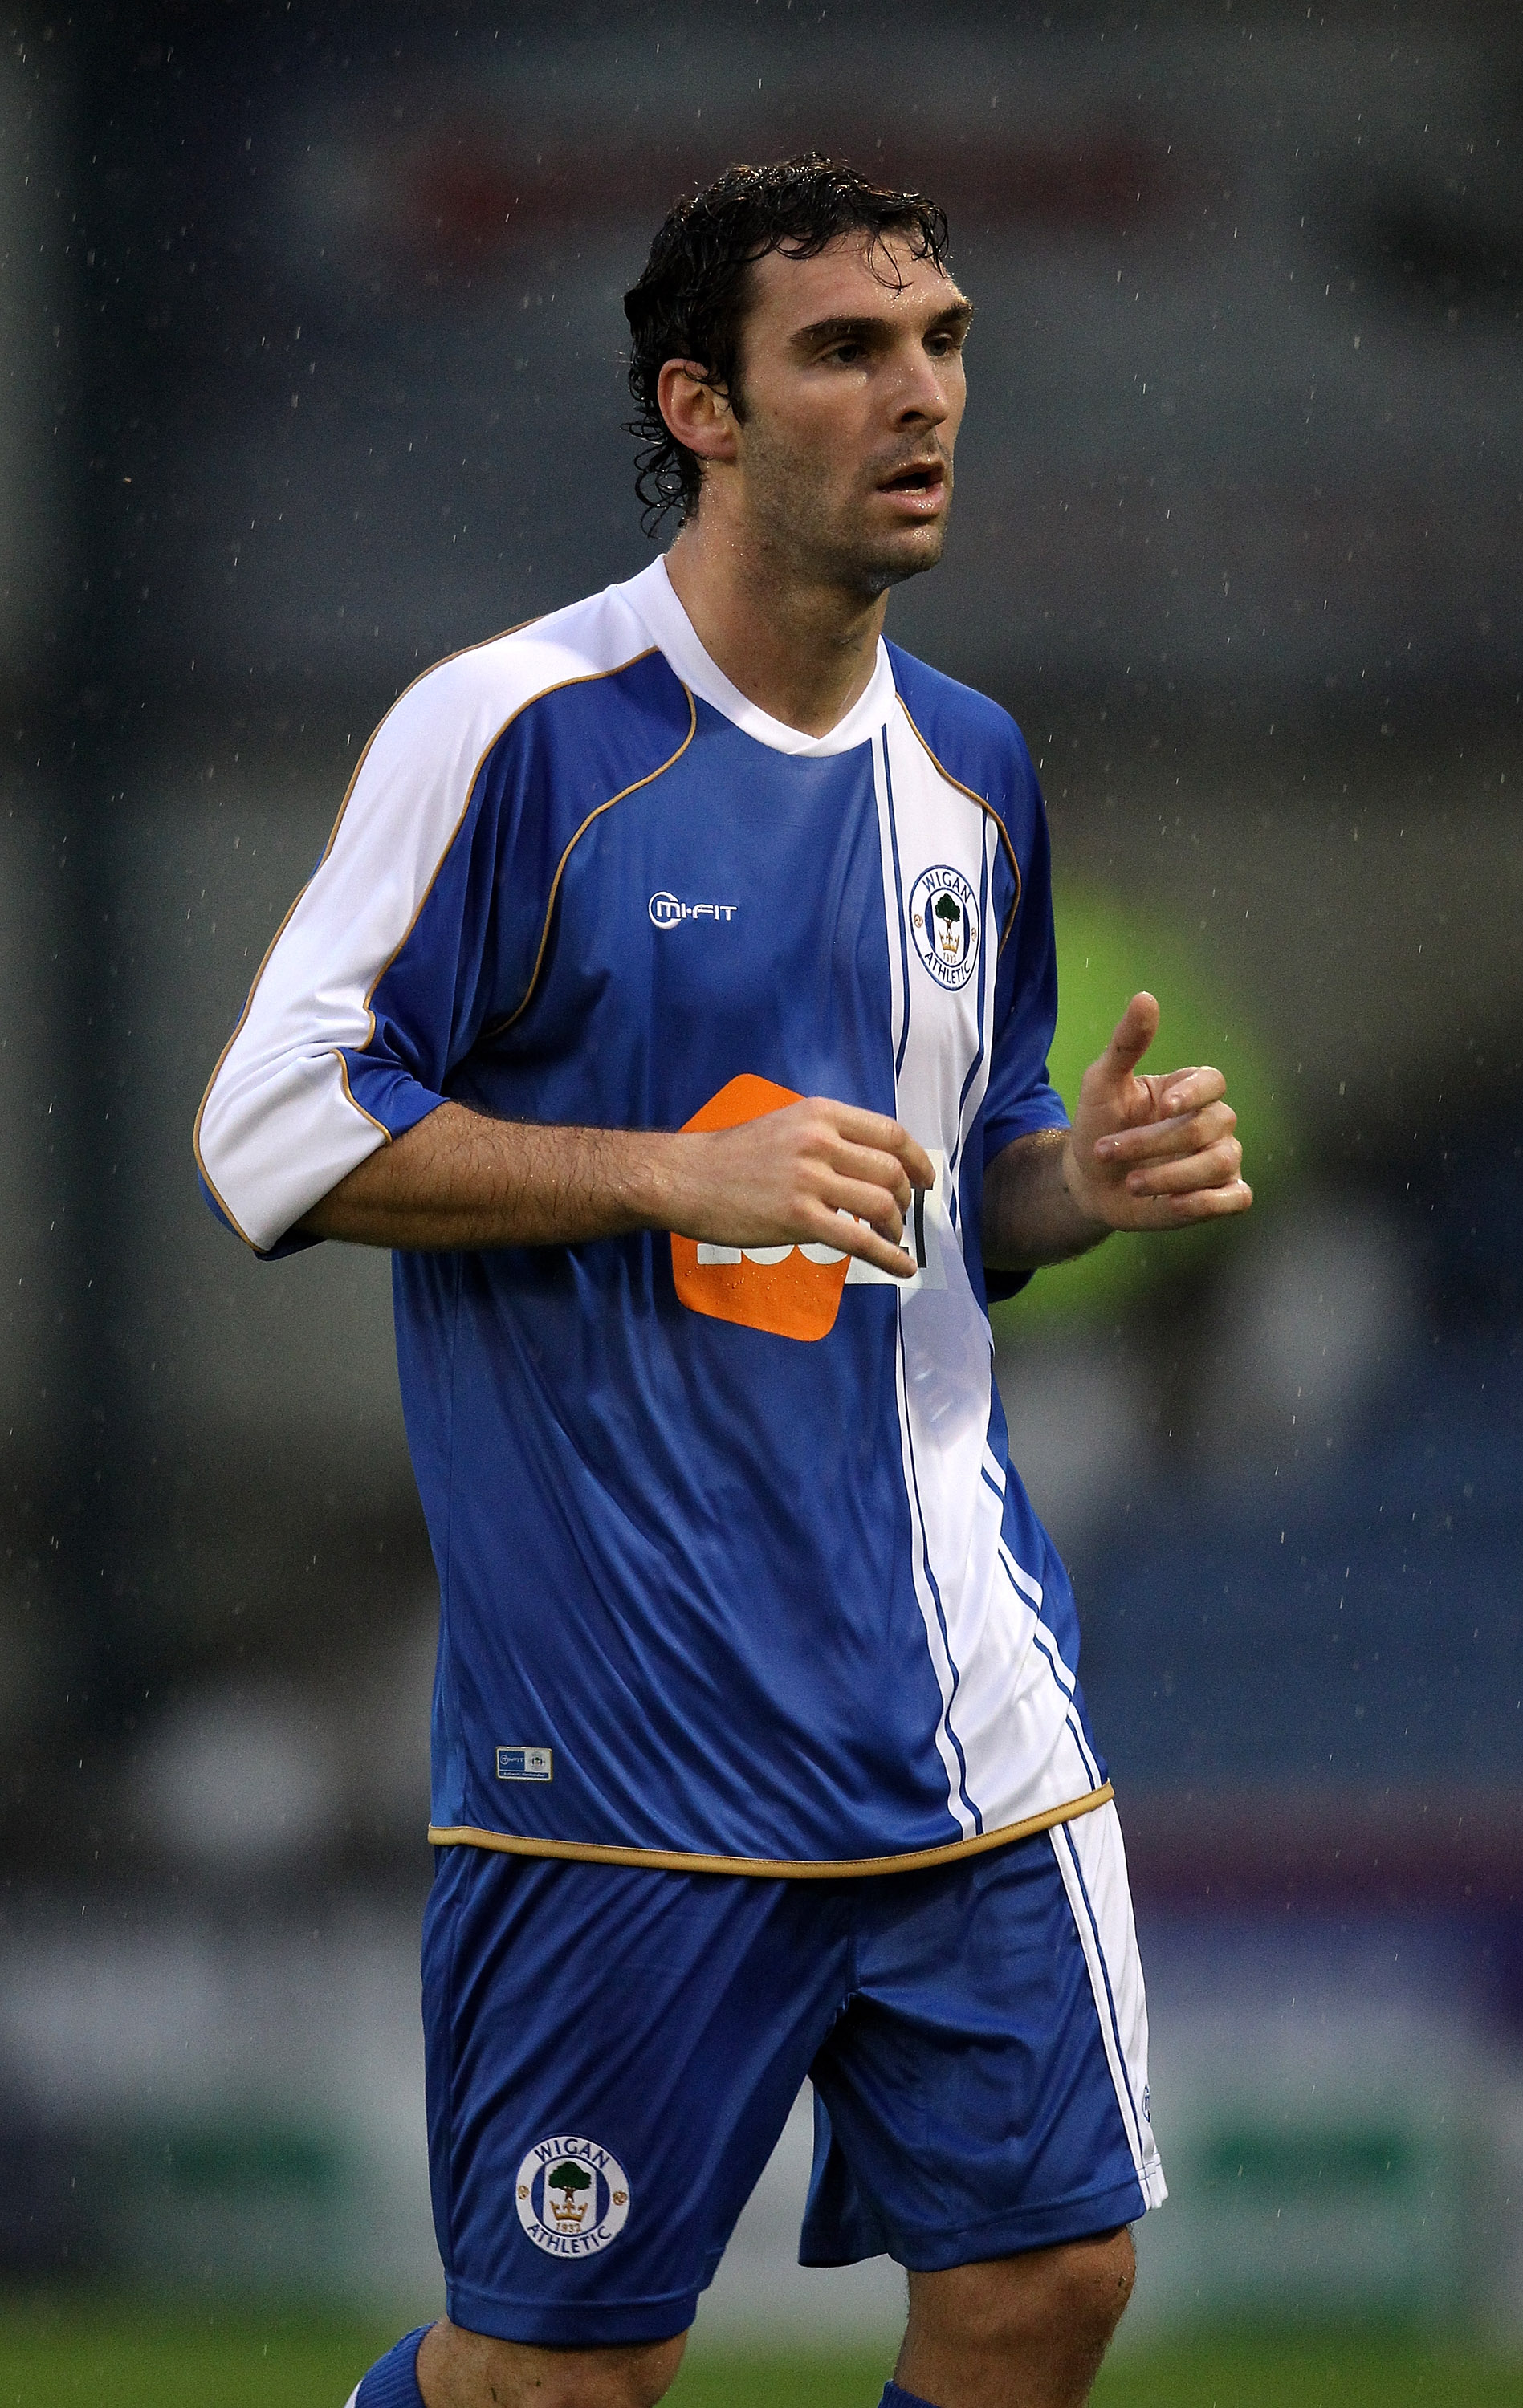 OLDHAM, ENGLAND - JULY 20:  Mauro Boselli of Wigan looks on during the pre season friendly match between Oldham Athletic and Wigan Athletic at Boundary Park on July 20, 2010 in Oldham, England.  (Photo by David Rogers/Getty Images)